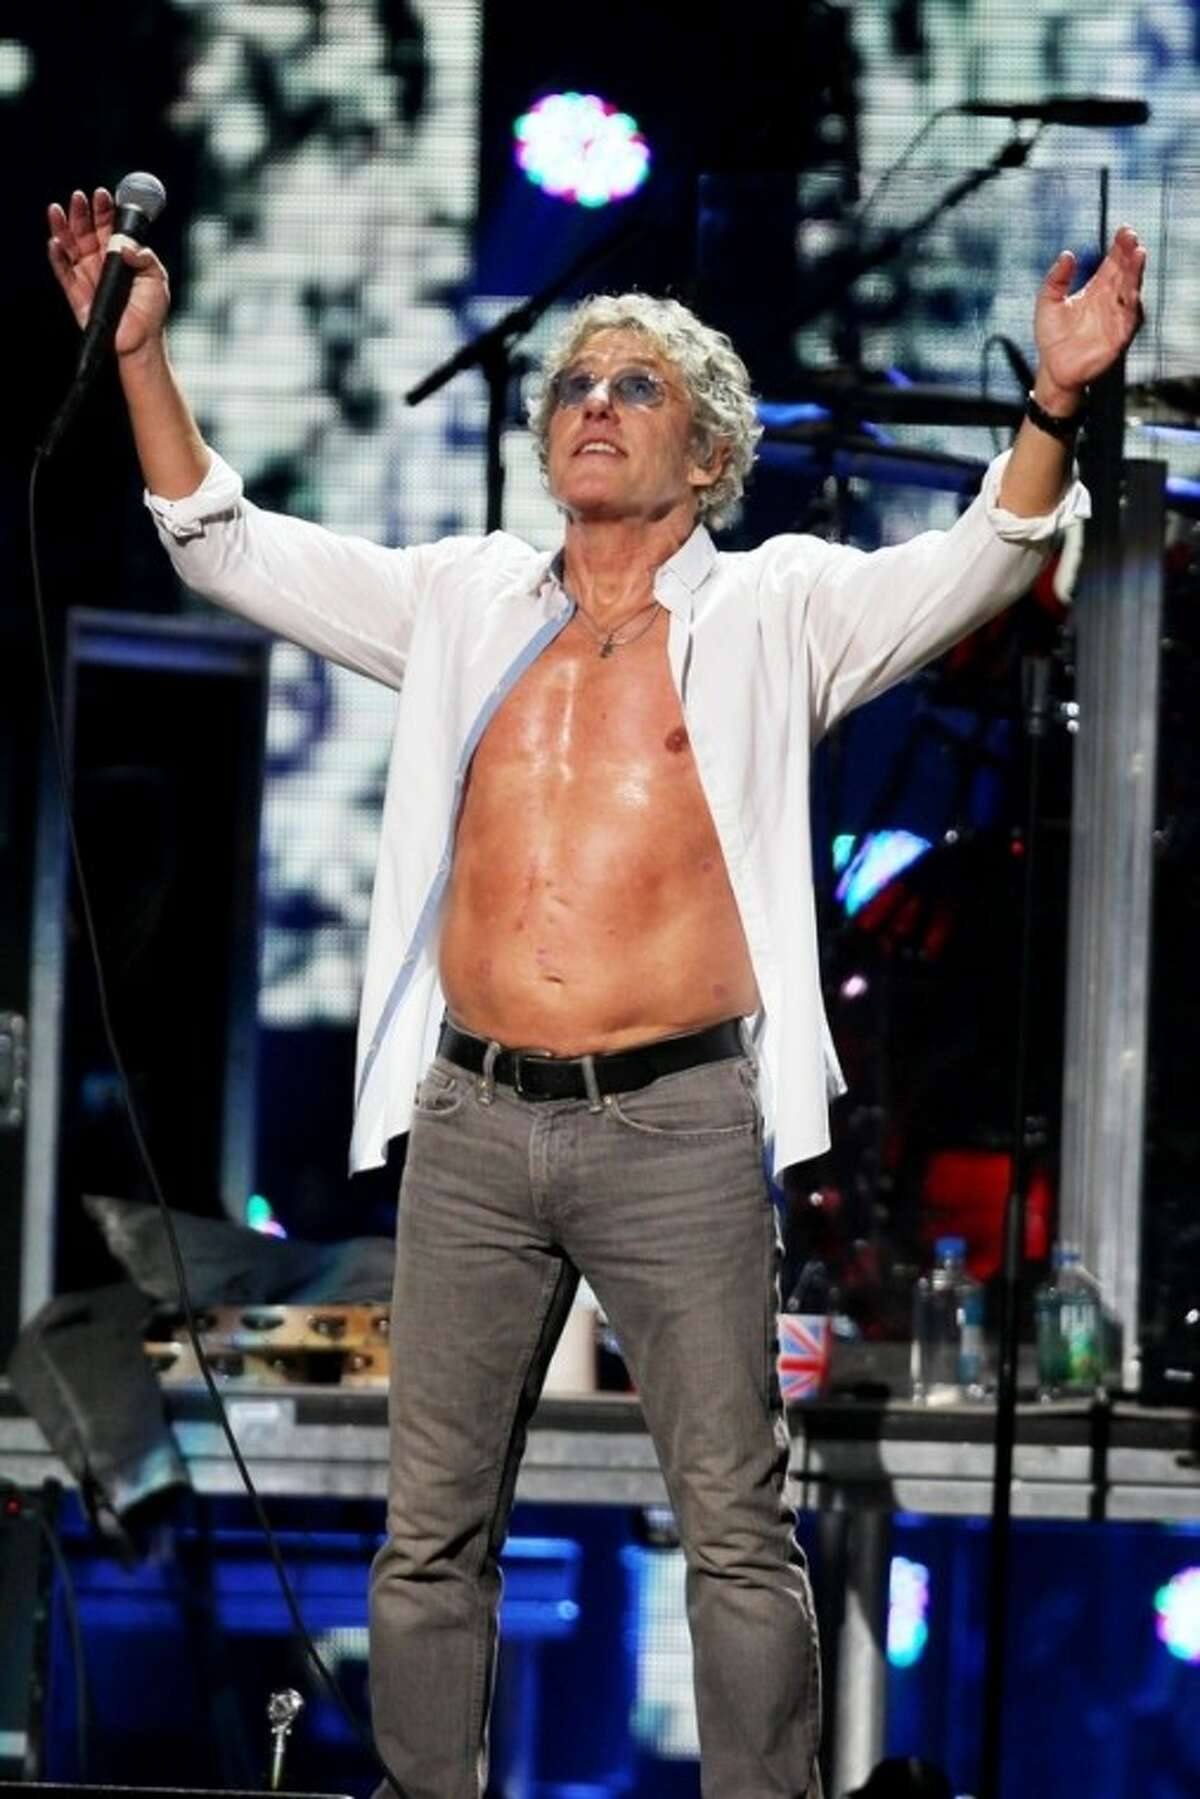 This image released by Starpix shows Roger Daltrey of The Who at the 12-12-12 The Concert for Sandy Relief at Madison Square Garden in New York on Wednesday, Dec. 12, 2012. Proceeds from the show will be distributed through the Robin Hood Foundation. (AP Photo/Starpix, Dave Allocca)